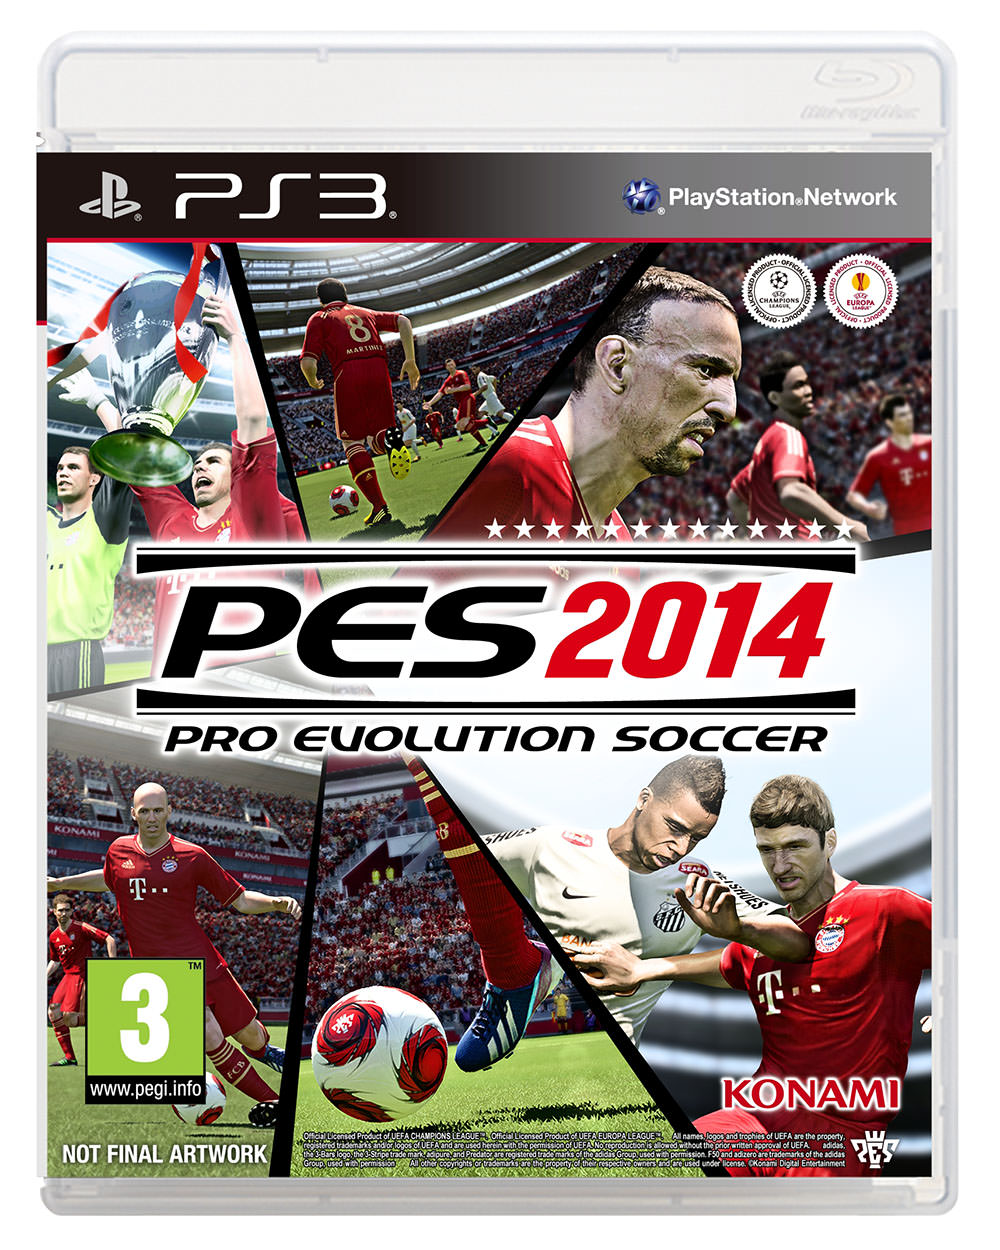 PES 2014 Cover shot